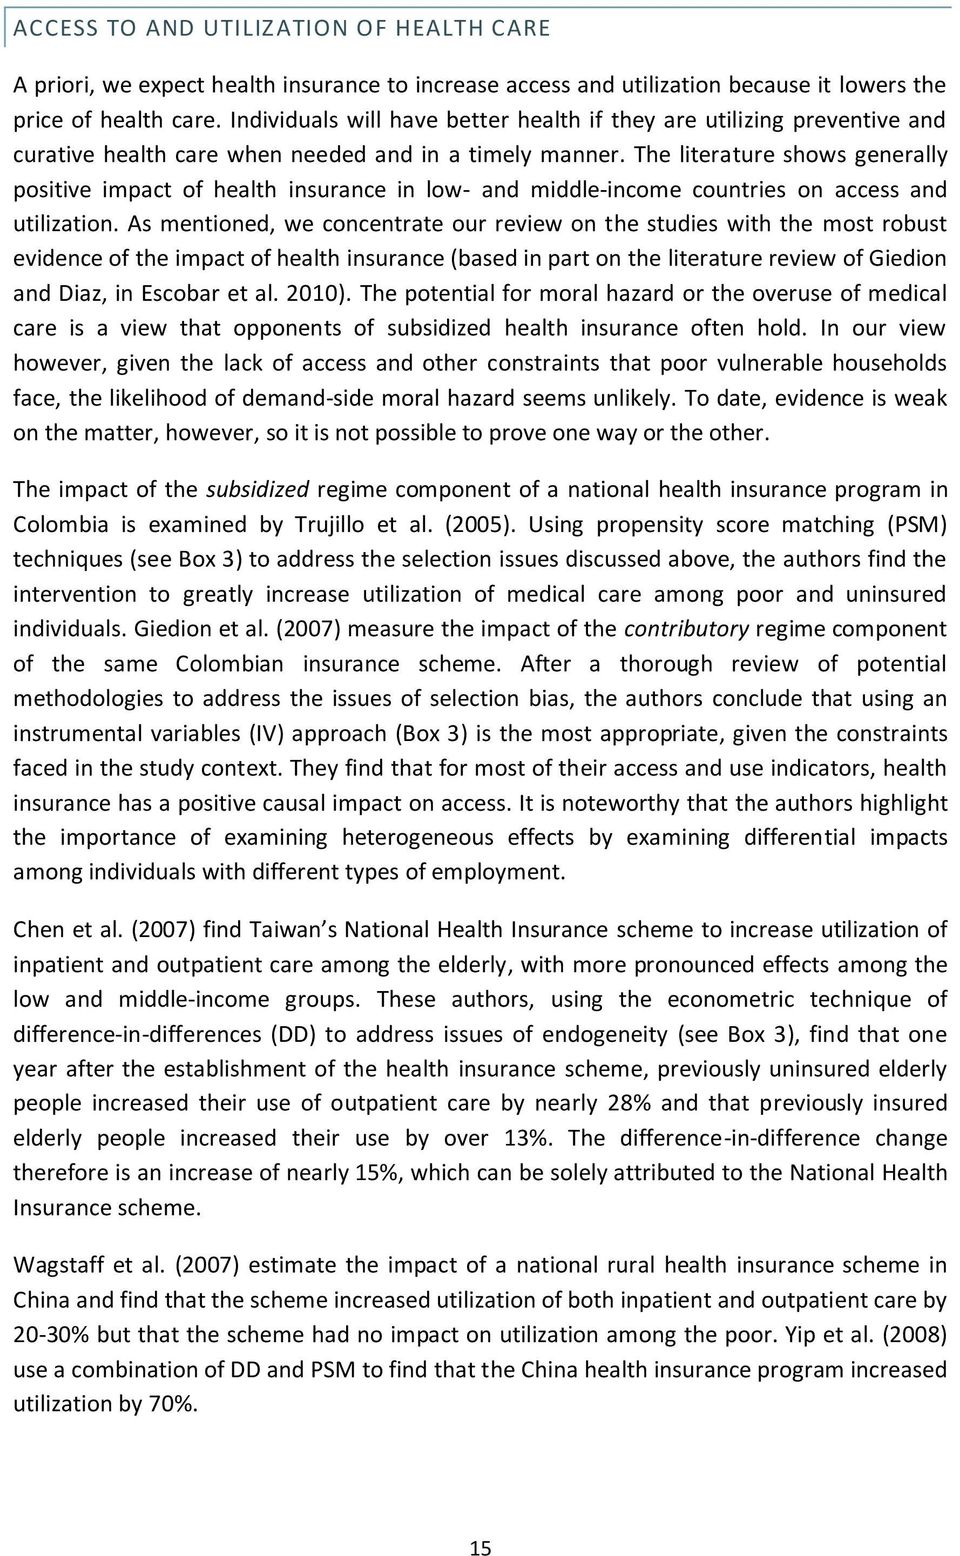 The literature shows generally positive impact of health insurance in low- and middle-income countries on access and utilization.